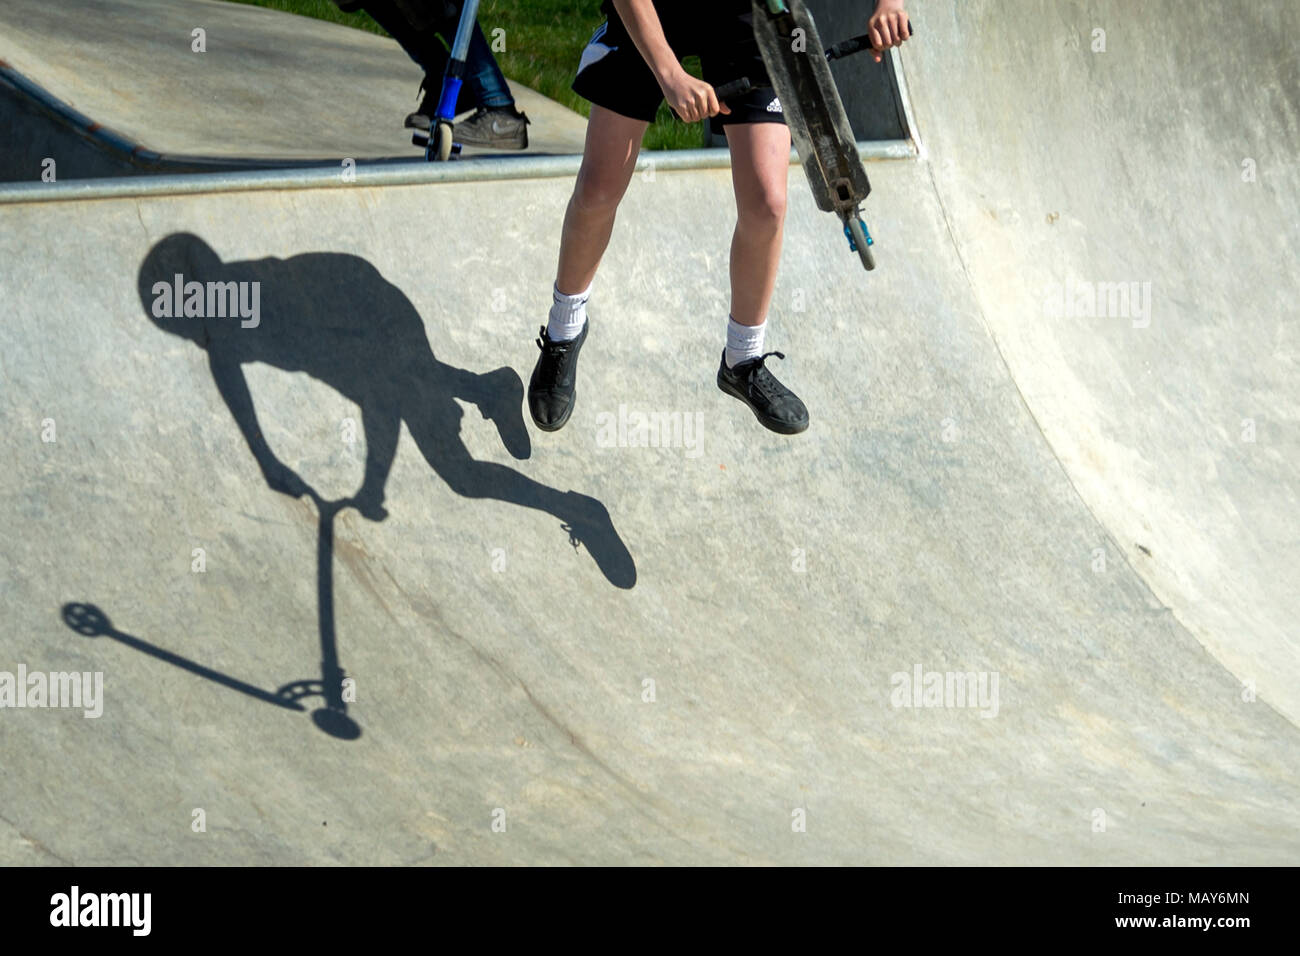 Melton Mowbray, UK. 05th April  2018: UK Weather: A scoot rider casts a shadow on the quarter pipe at playclose  skatepark during half term, blue sky and light warm wind. Credit: Clifford Norton/Alamy Live News. - Stock Image